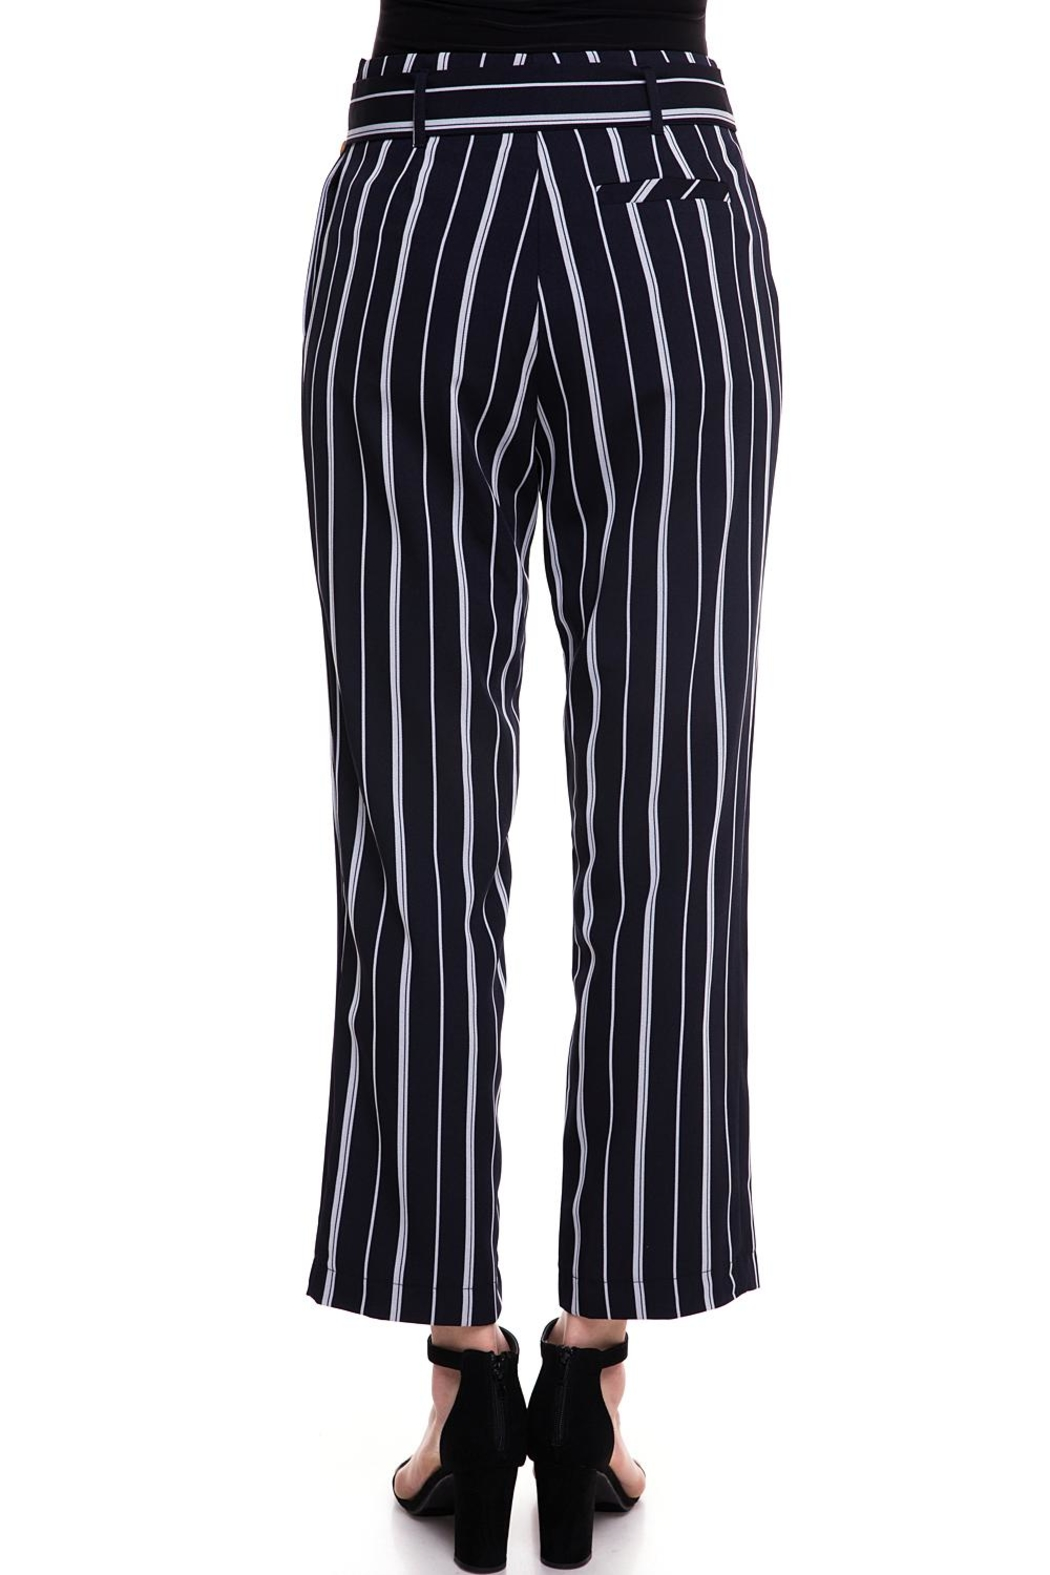 The Clothing Co Striped Buttoned Pants - Side Cropped Image